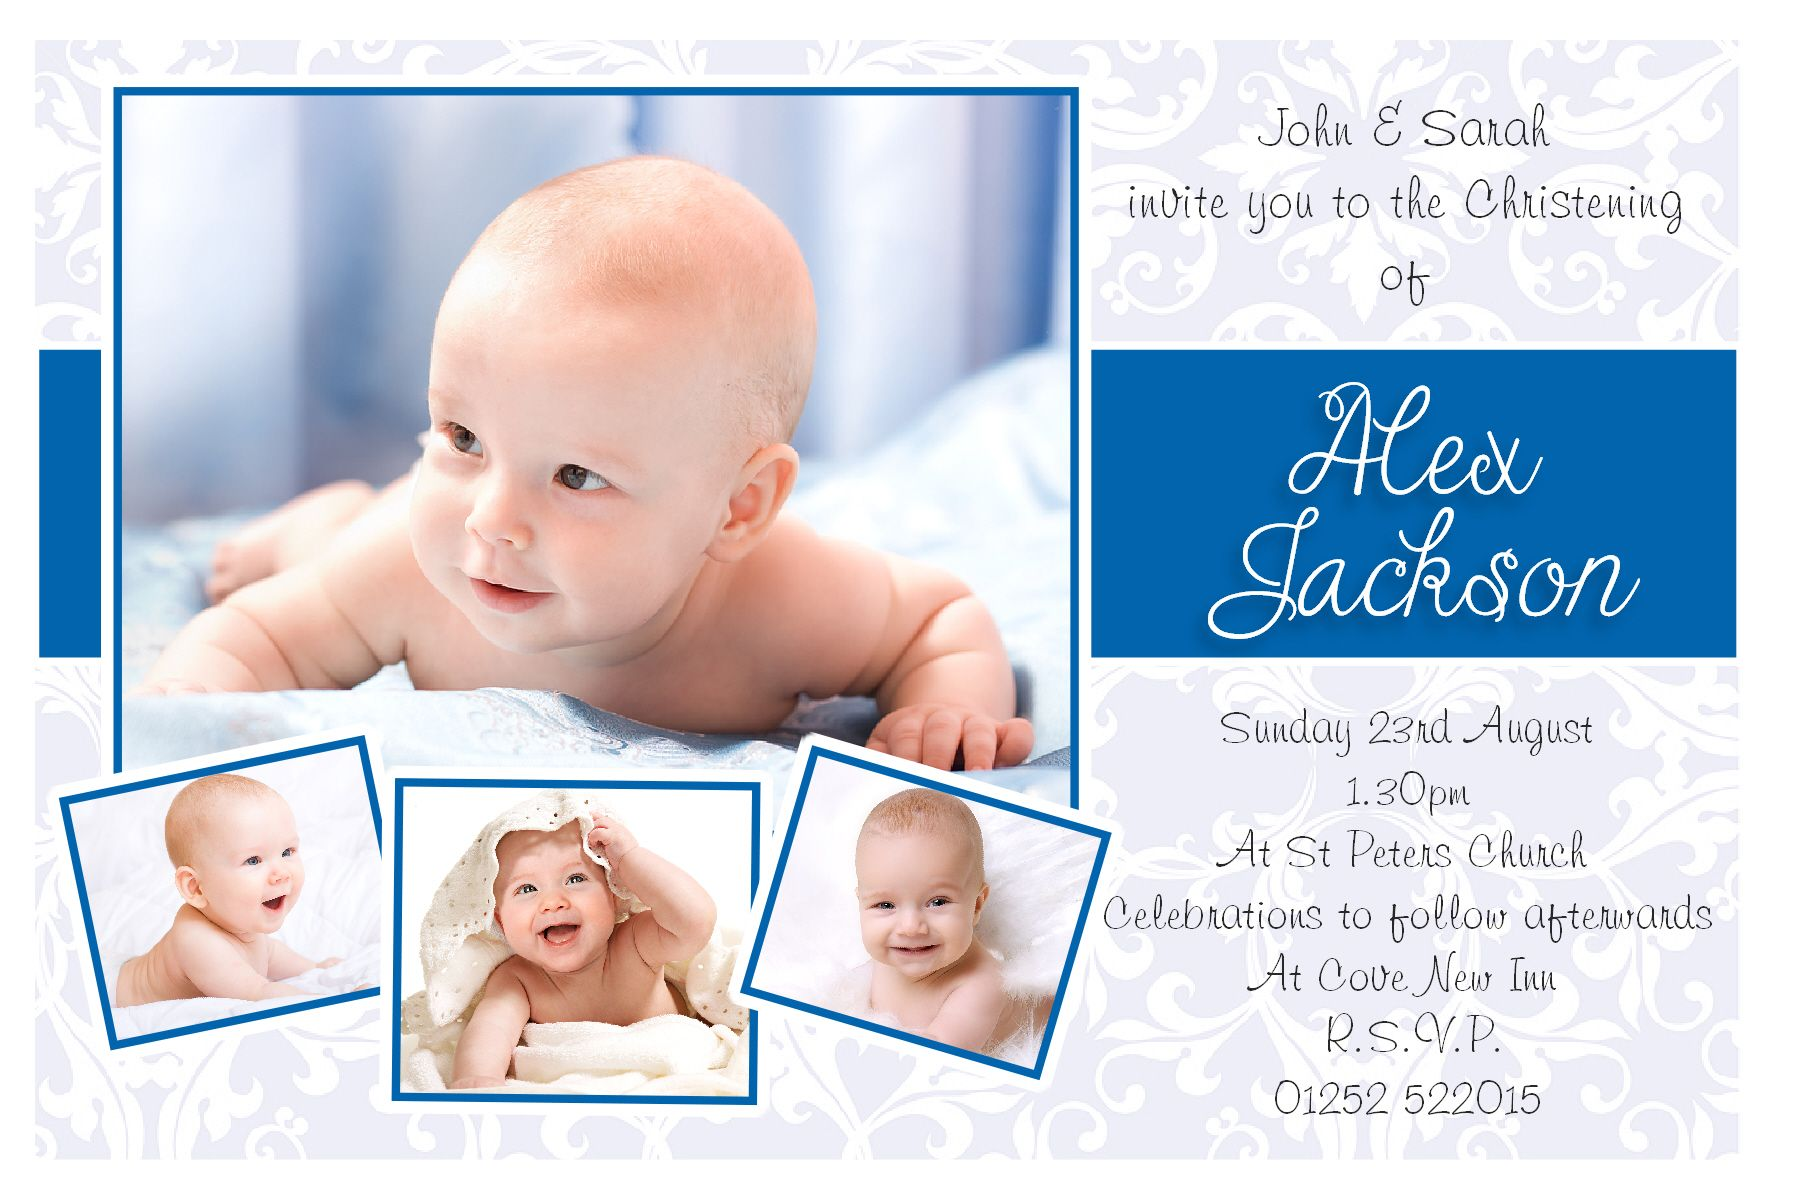 invitation card maker for christening and birthday ; ideas-of-invitation-card-maker-for-christening-and-birthday-for-your-baptism-christening-ideas-of-invitation-card-maker-for-christening-and-birthday